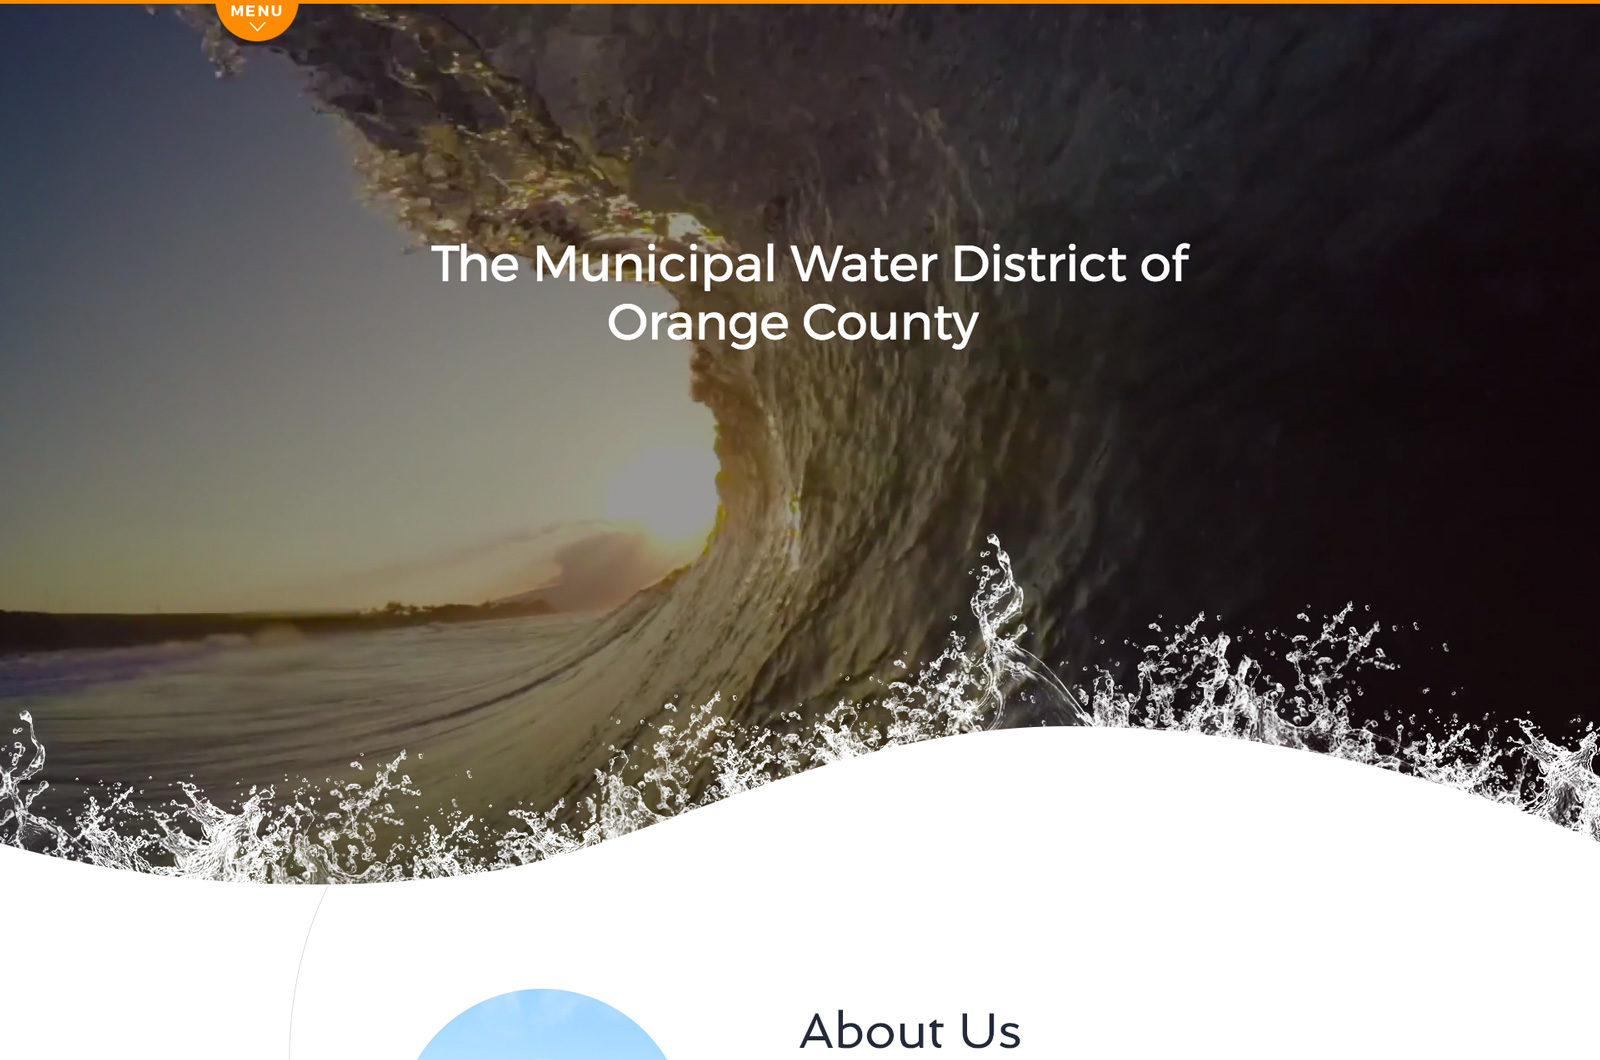 Web Design for Municipal Water District of OC